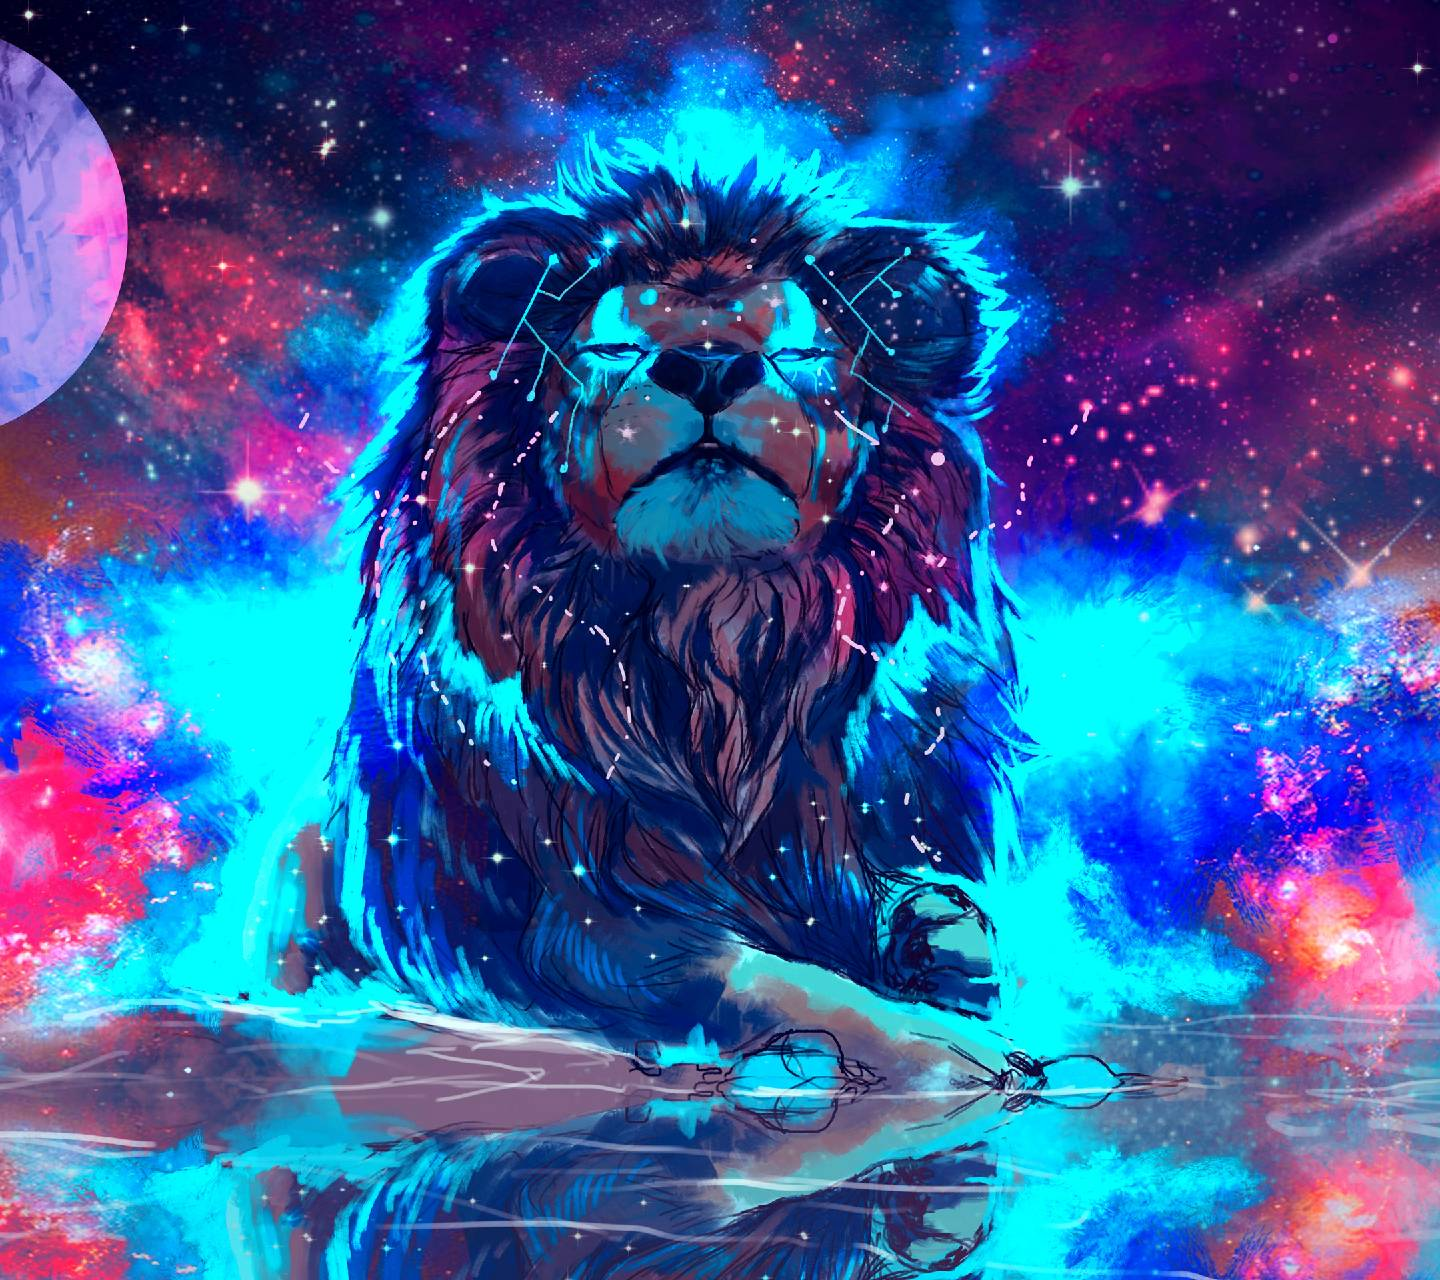 1440x1280 Tiger Galaxy Wallpaper by 18717 - c3 - Free on ZEDGE™